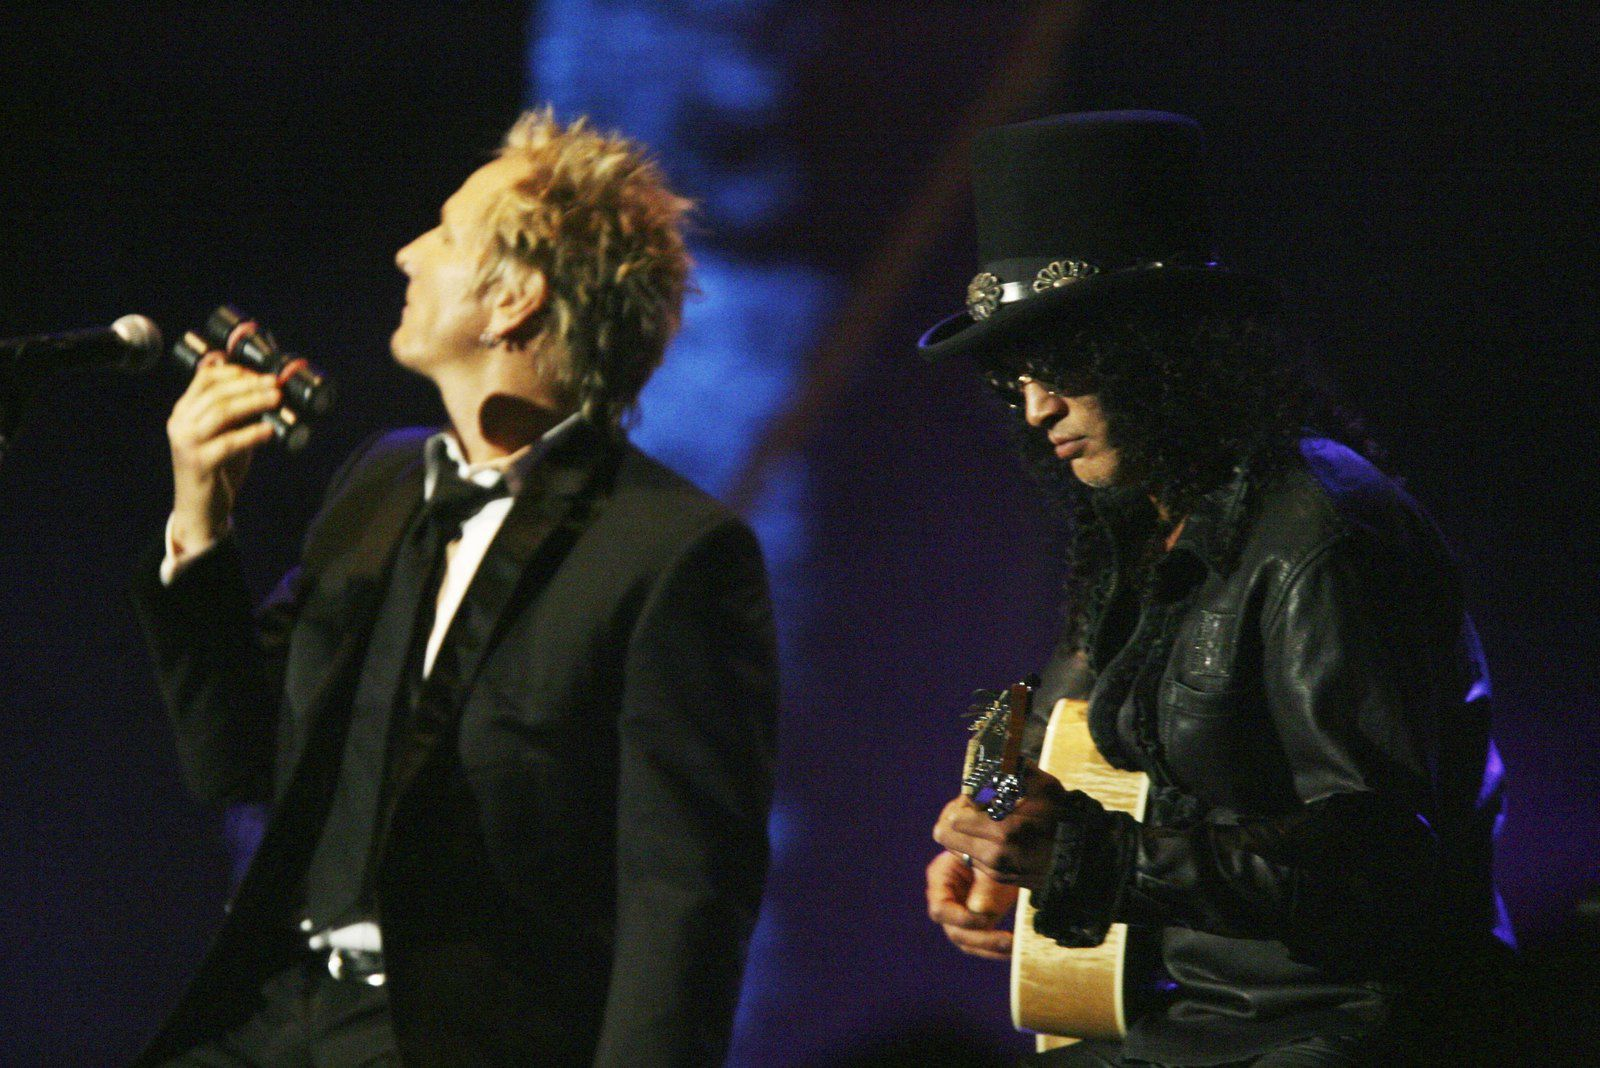 WEST HOLLYWOOD, CA - OCTOBER 5:  Velvet Revolver's Matt Sorum (L) and Slash peform at City of Hope's Spirit of Life Award Gala at the Pacific Design Center on October 5, 2006 in West Hollywood, California. (Photo by Kevin Winter/Getty Images)